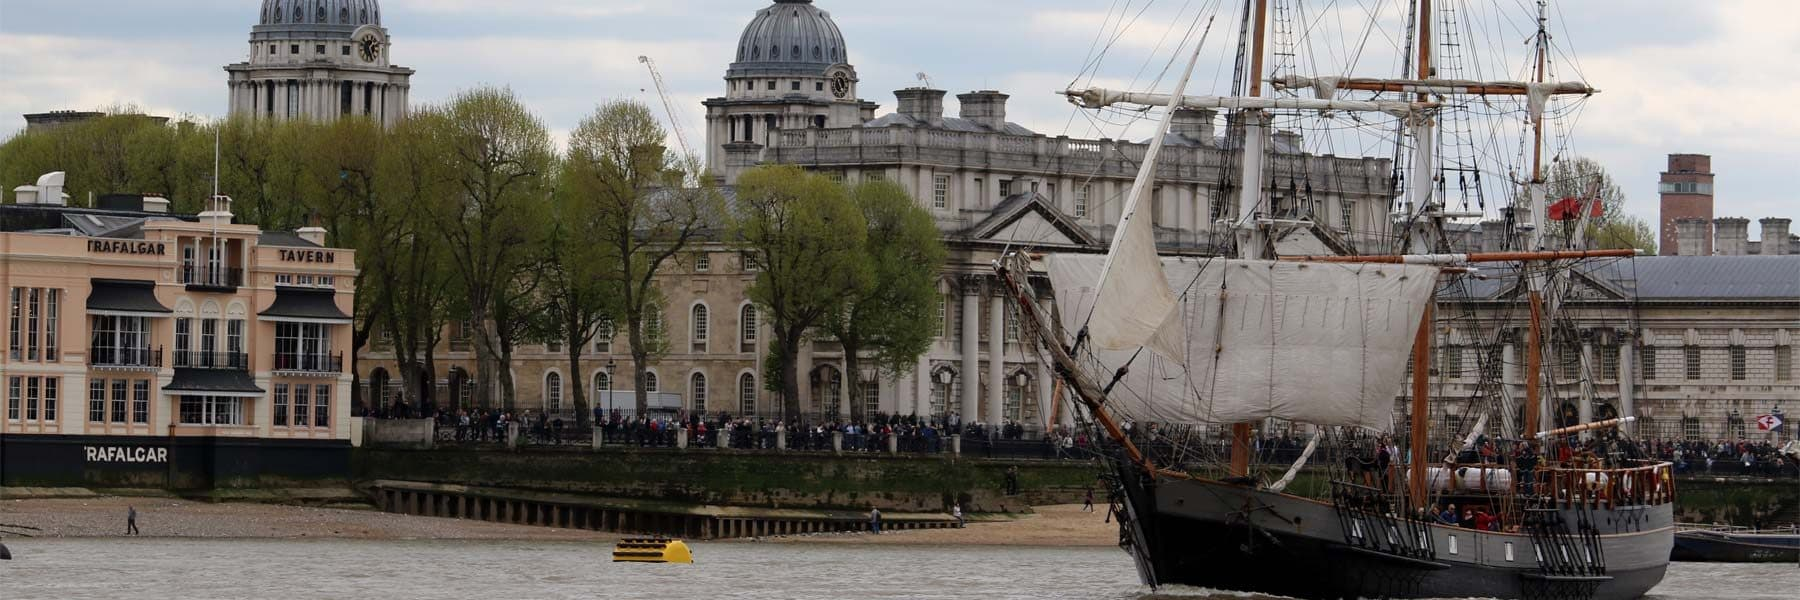 Tall Ship Earl of Pembroke passing the Old Royal Naval College